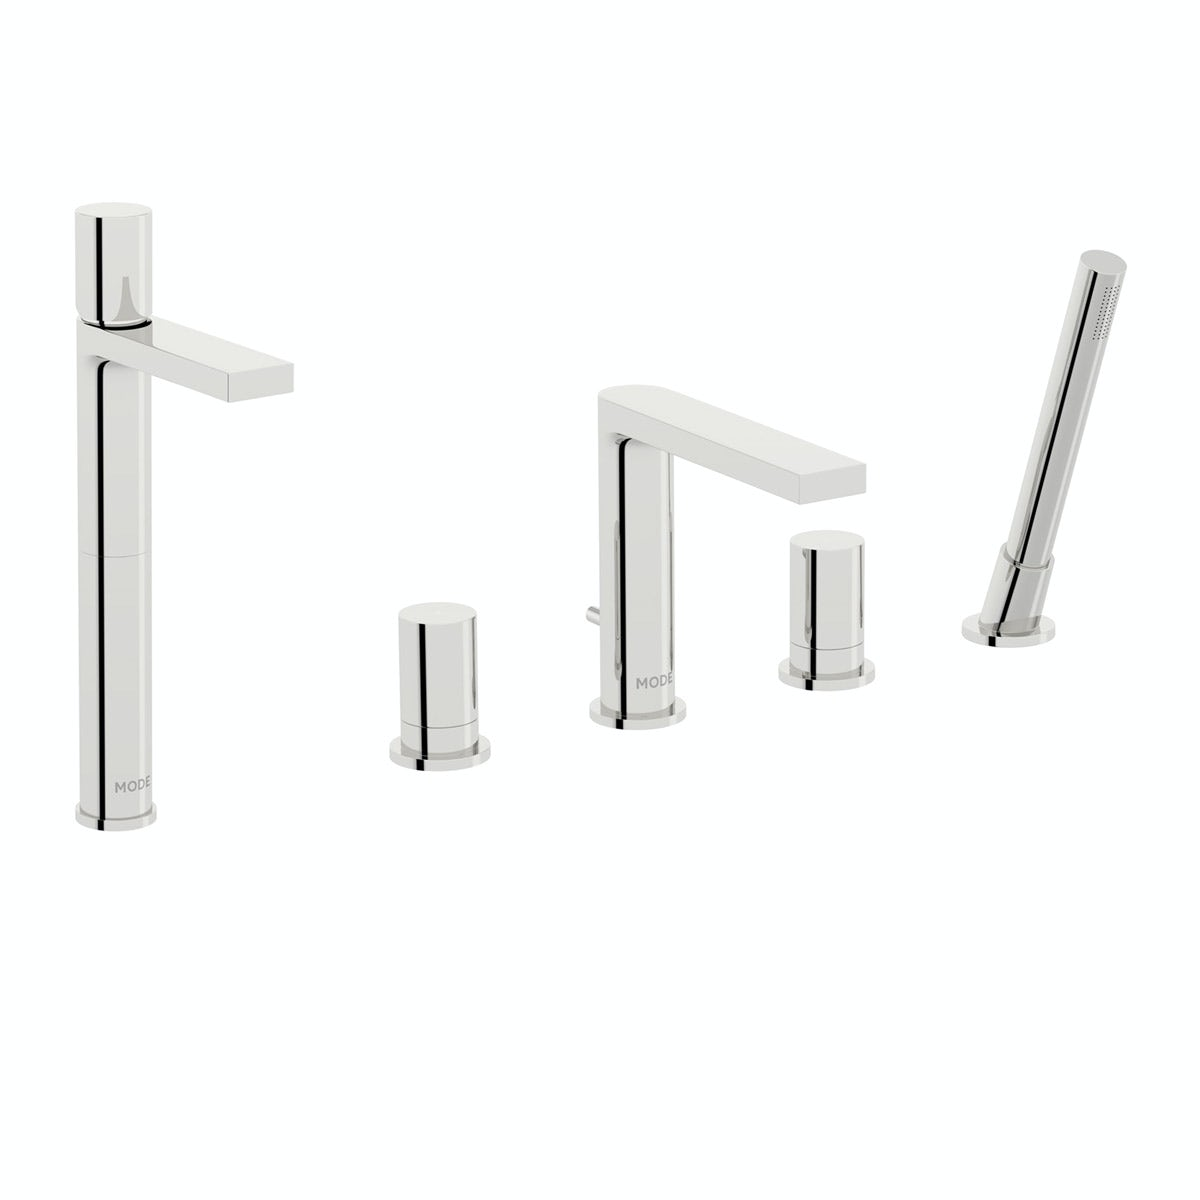 Mode Heath high rise basin and 4 hole bath shower mixer tap pack